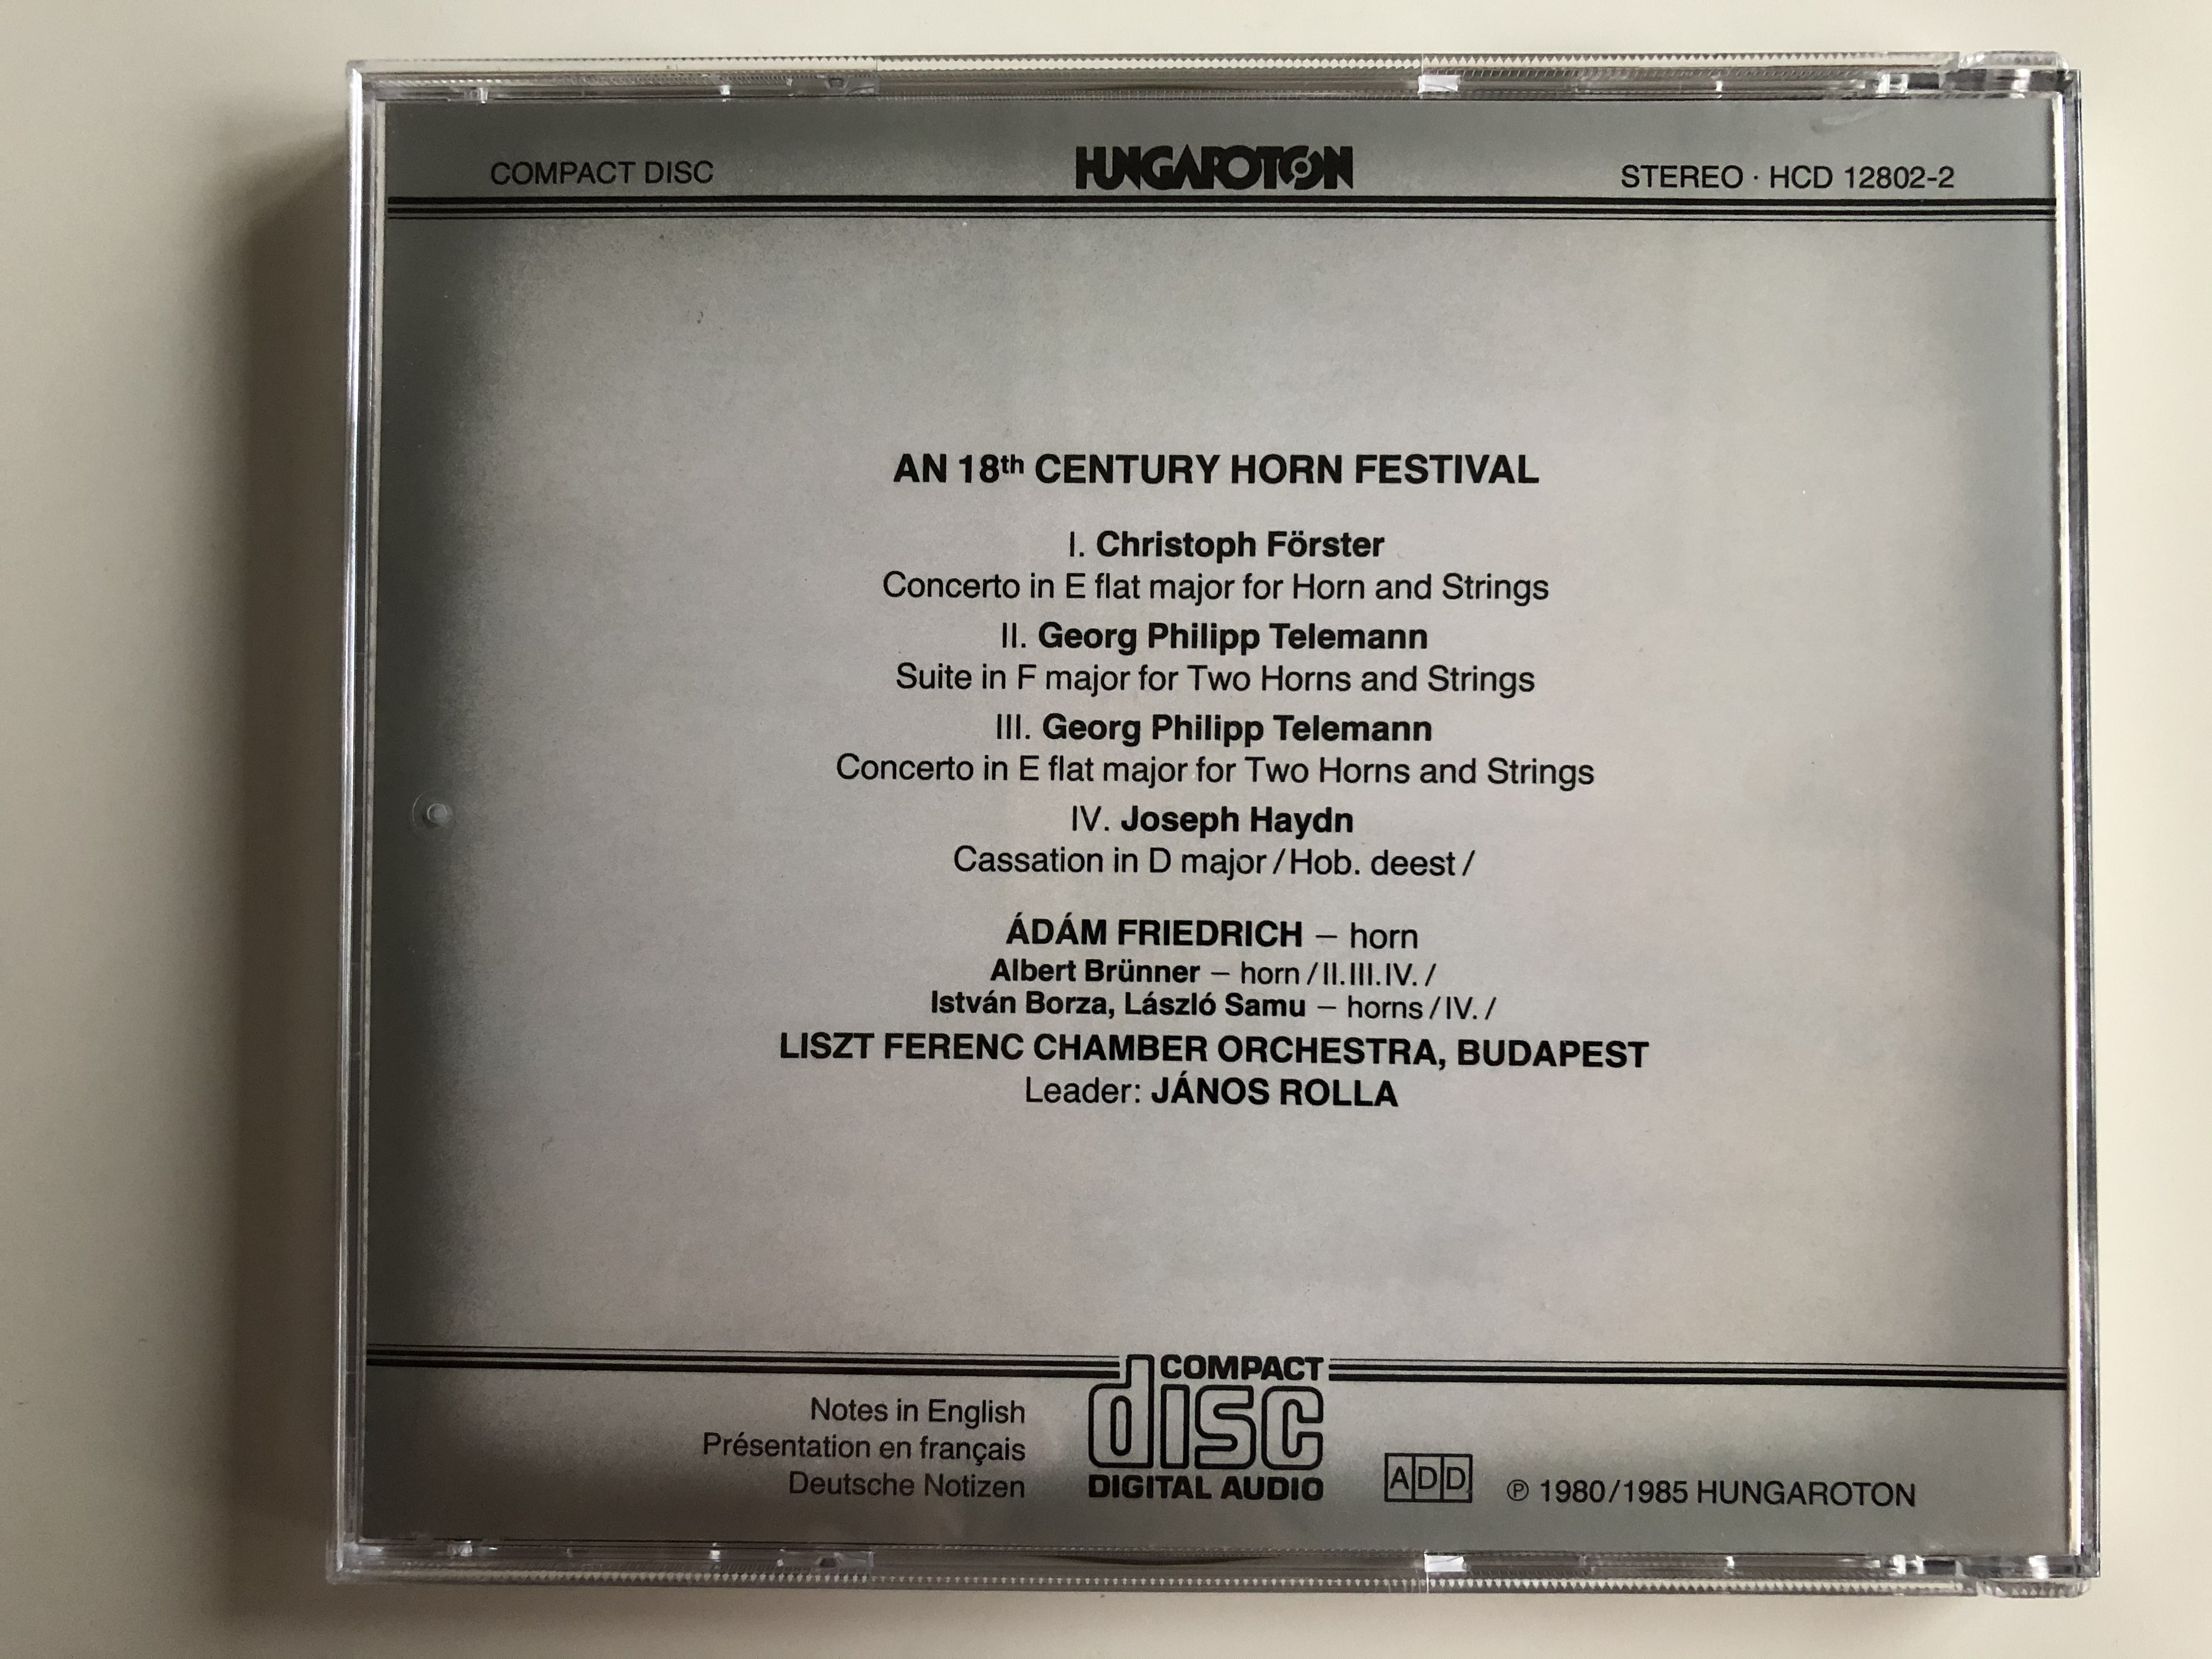 an-18th-century-horn-festival-forster-telemann-haydn-adam-friedrich-liszt-ferenc-chamber-orchestra-budapest-janos-rolla-hungaroton-audio-cd-stereo-hcd-12802-2-7-.jpg